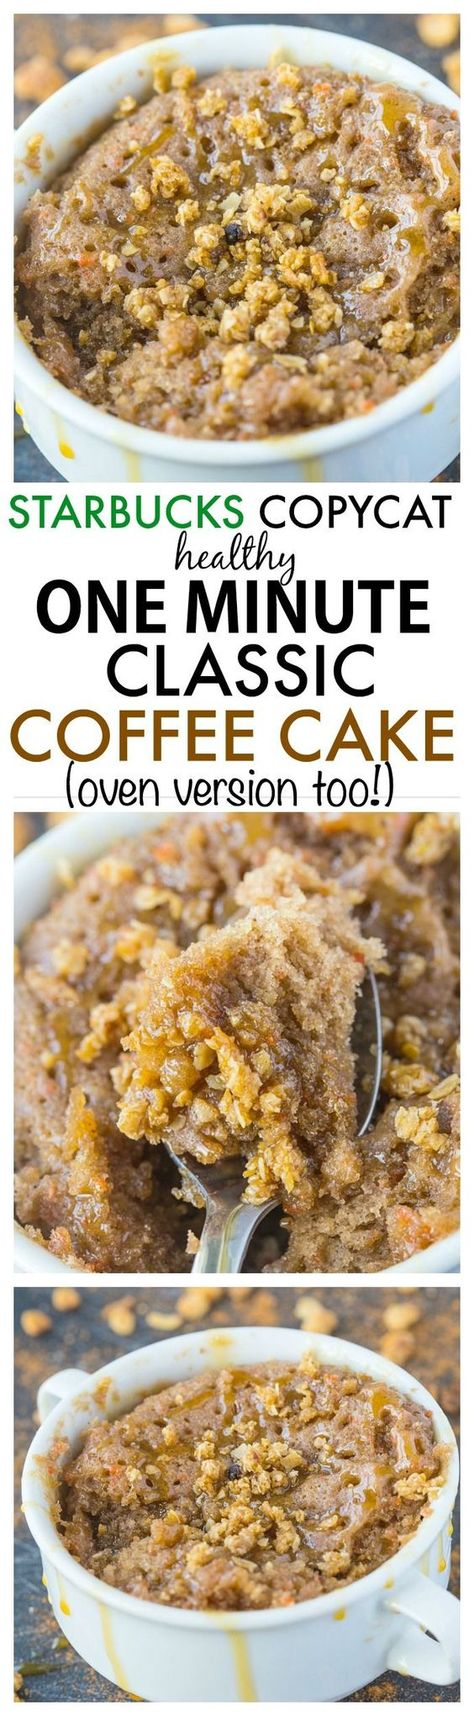 Healthy 1 Minute Classic Coffee Cake- Inspired by ...